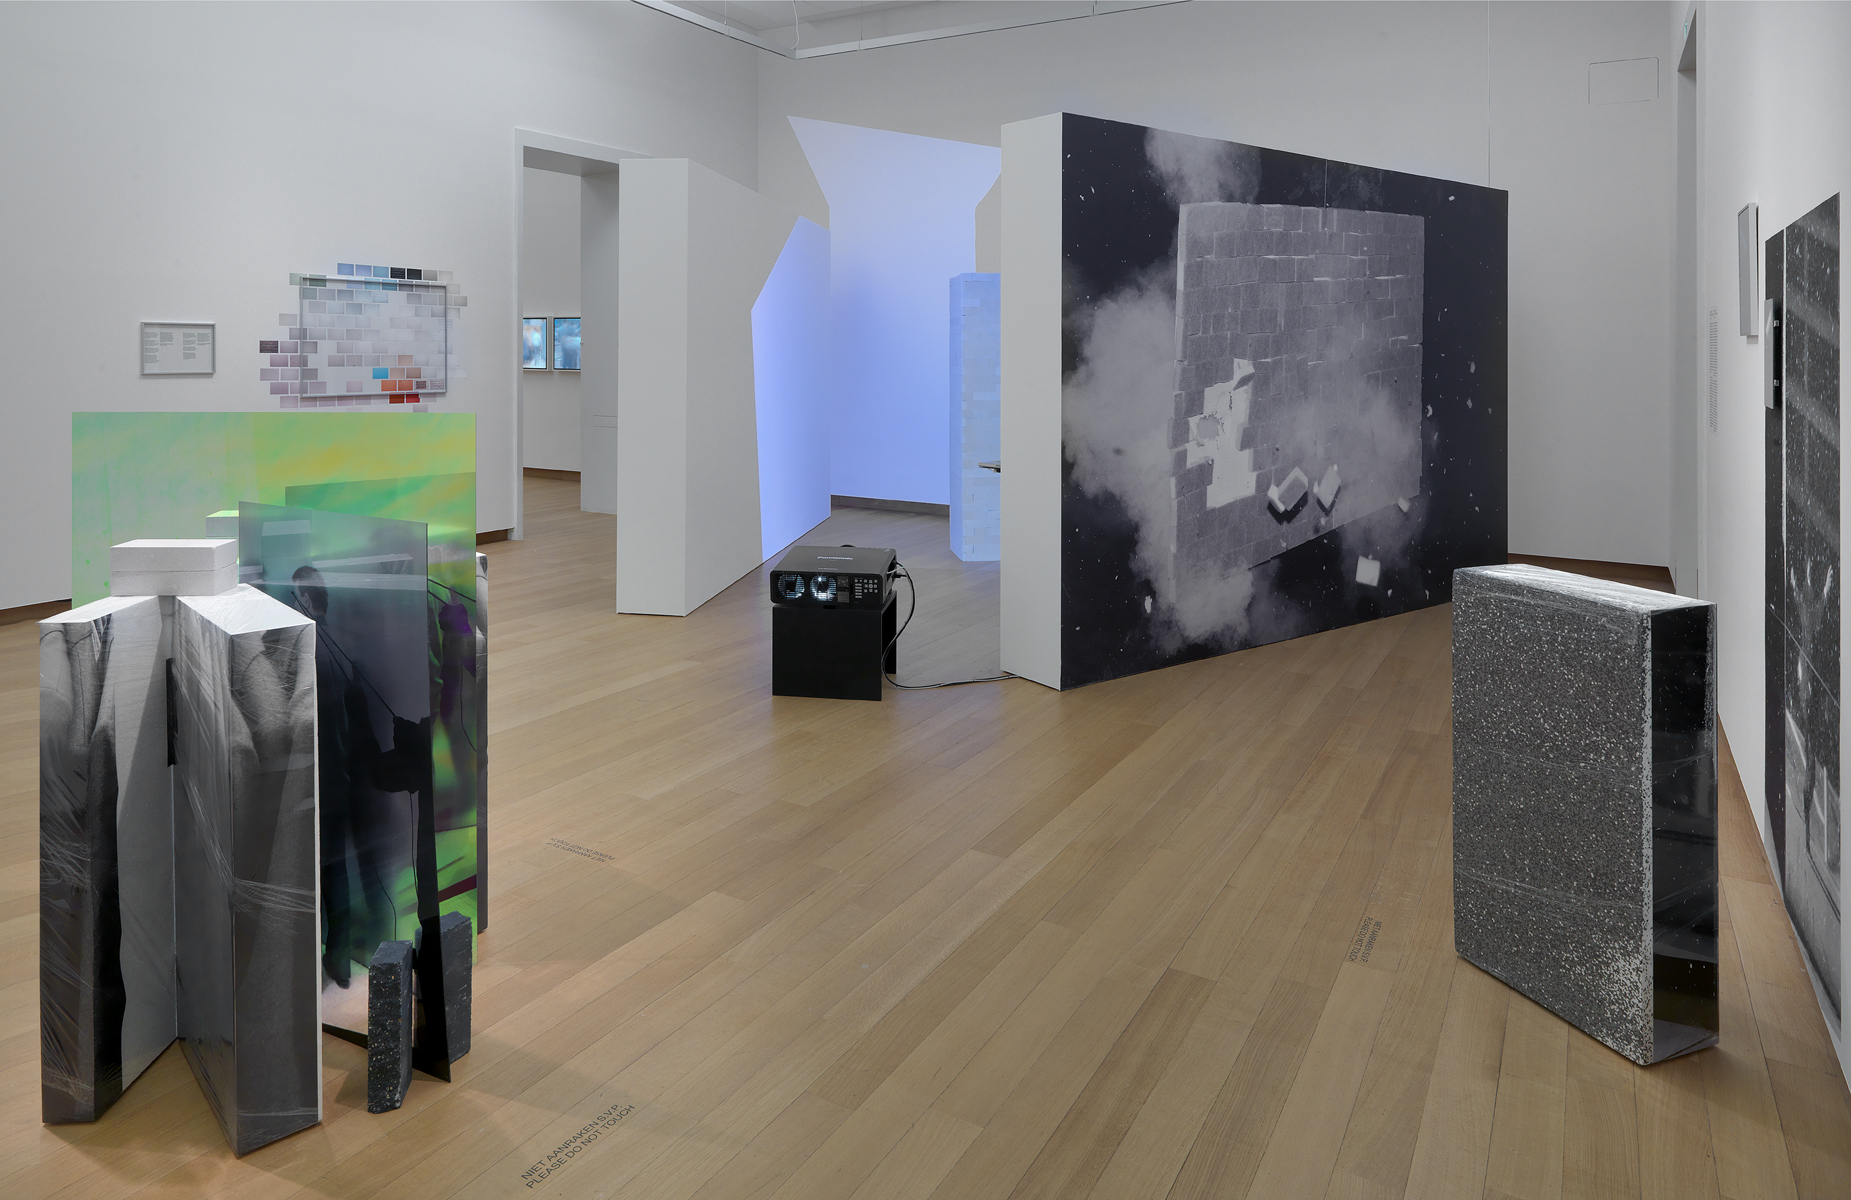 exhibition overview Within Interpretations of a wall